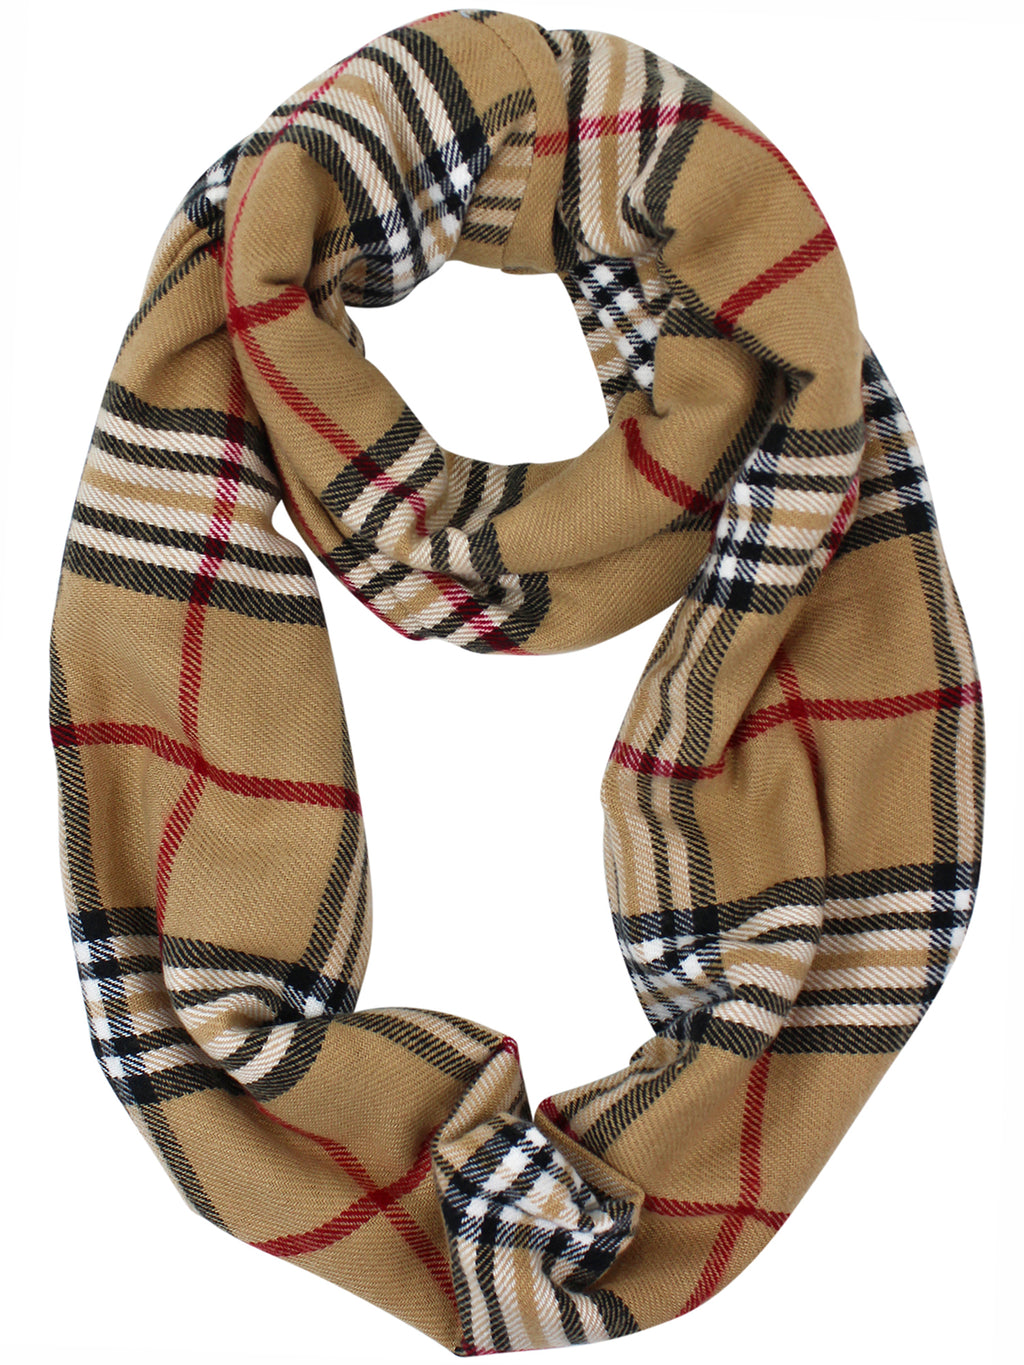 Beige & Tan Plaid Infinity Scarf